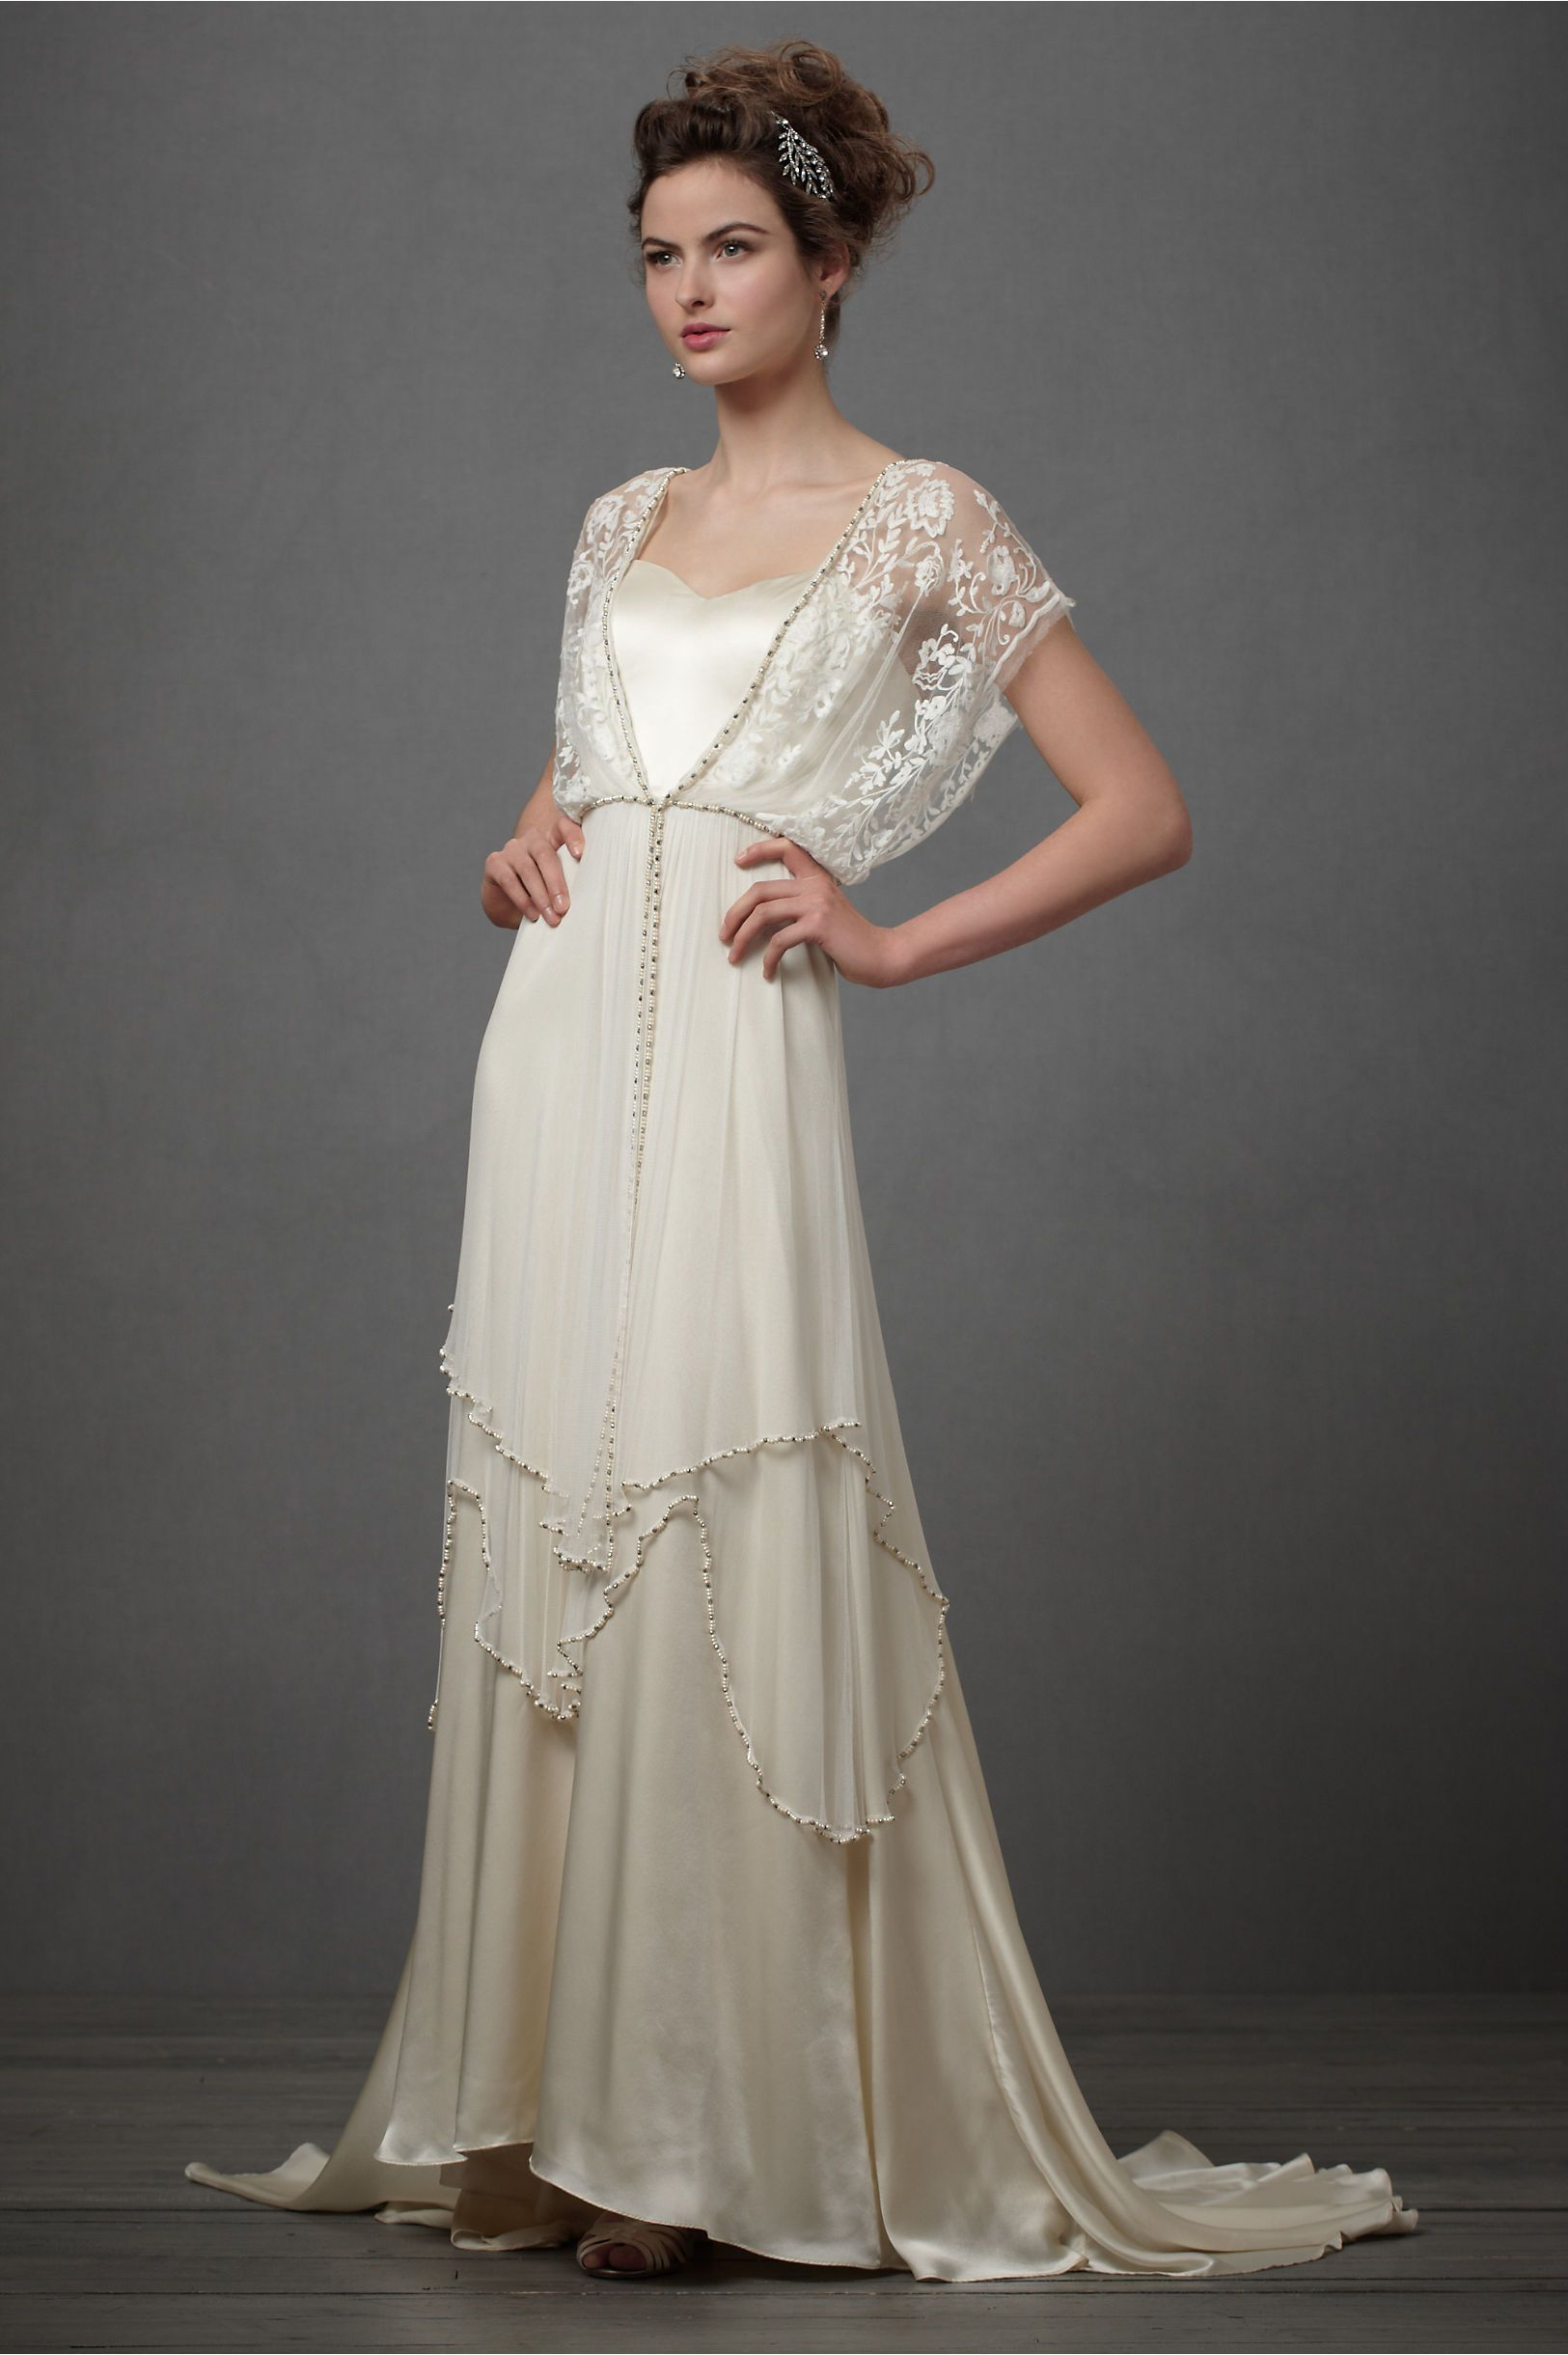 Make me a wedding dress  Allison Flaker Kathleen Hasaywill this make me look old like the